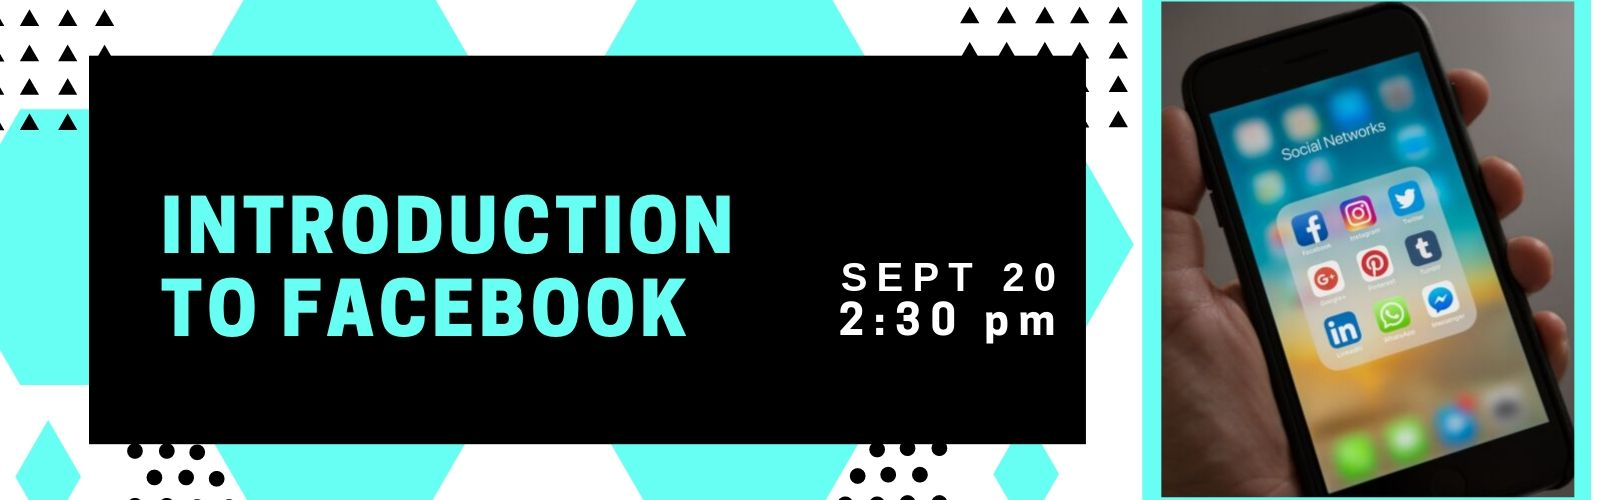 Introduction to Facebook on September 20  at 2:30 pm